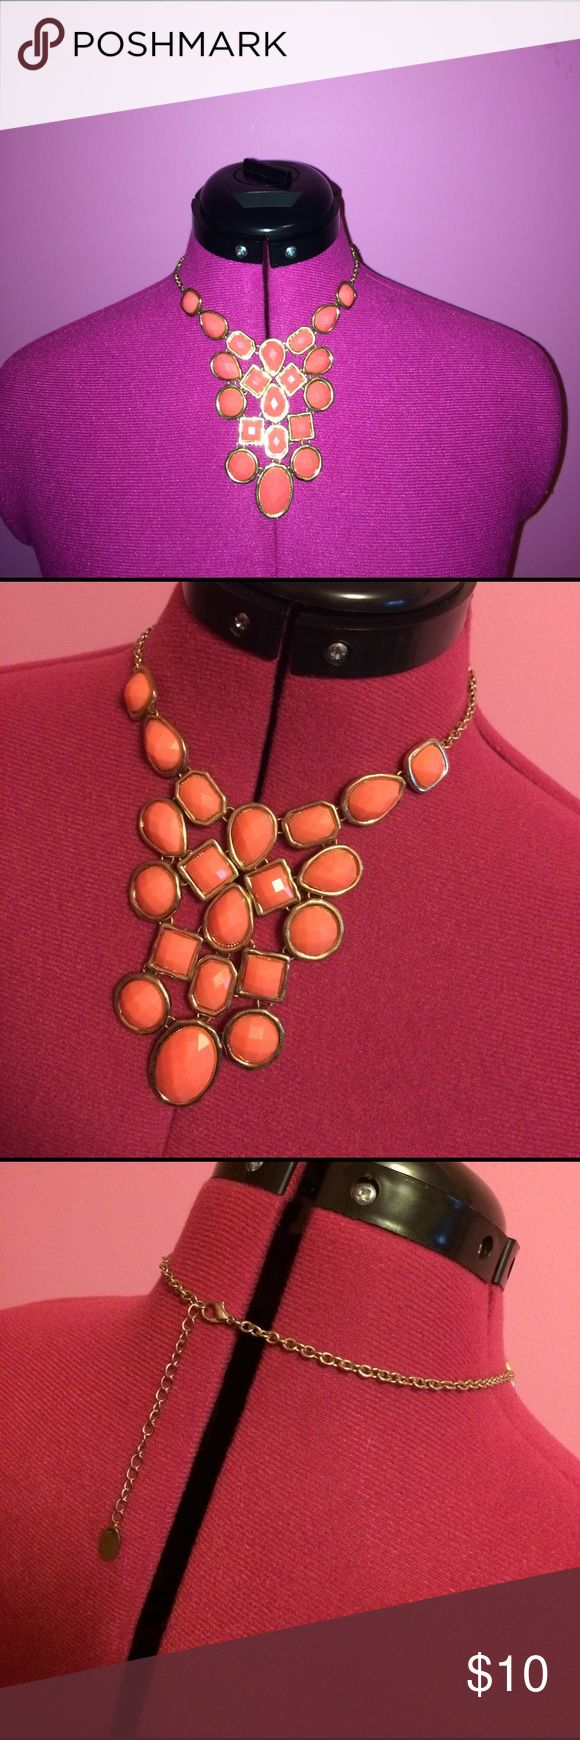 Coral & Gold Bubbly Necklace This coral & gold necklace is so girly and cute for spring!  Would look great with a pretty blouse or a button up.  Can be dressed up or down.  Brand is unknown, I've had this piece for a long time.  The length is adjustable, can be worn as a choker or a longer necklace. Jewelry Necklaces